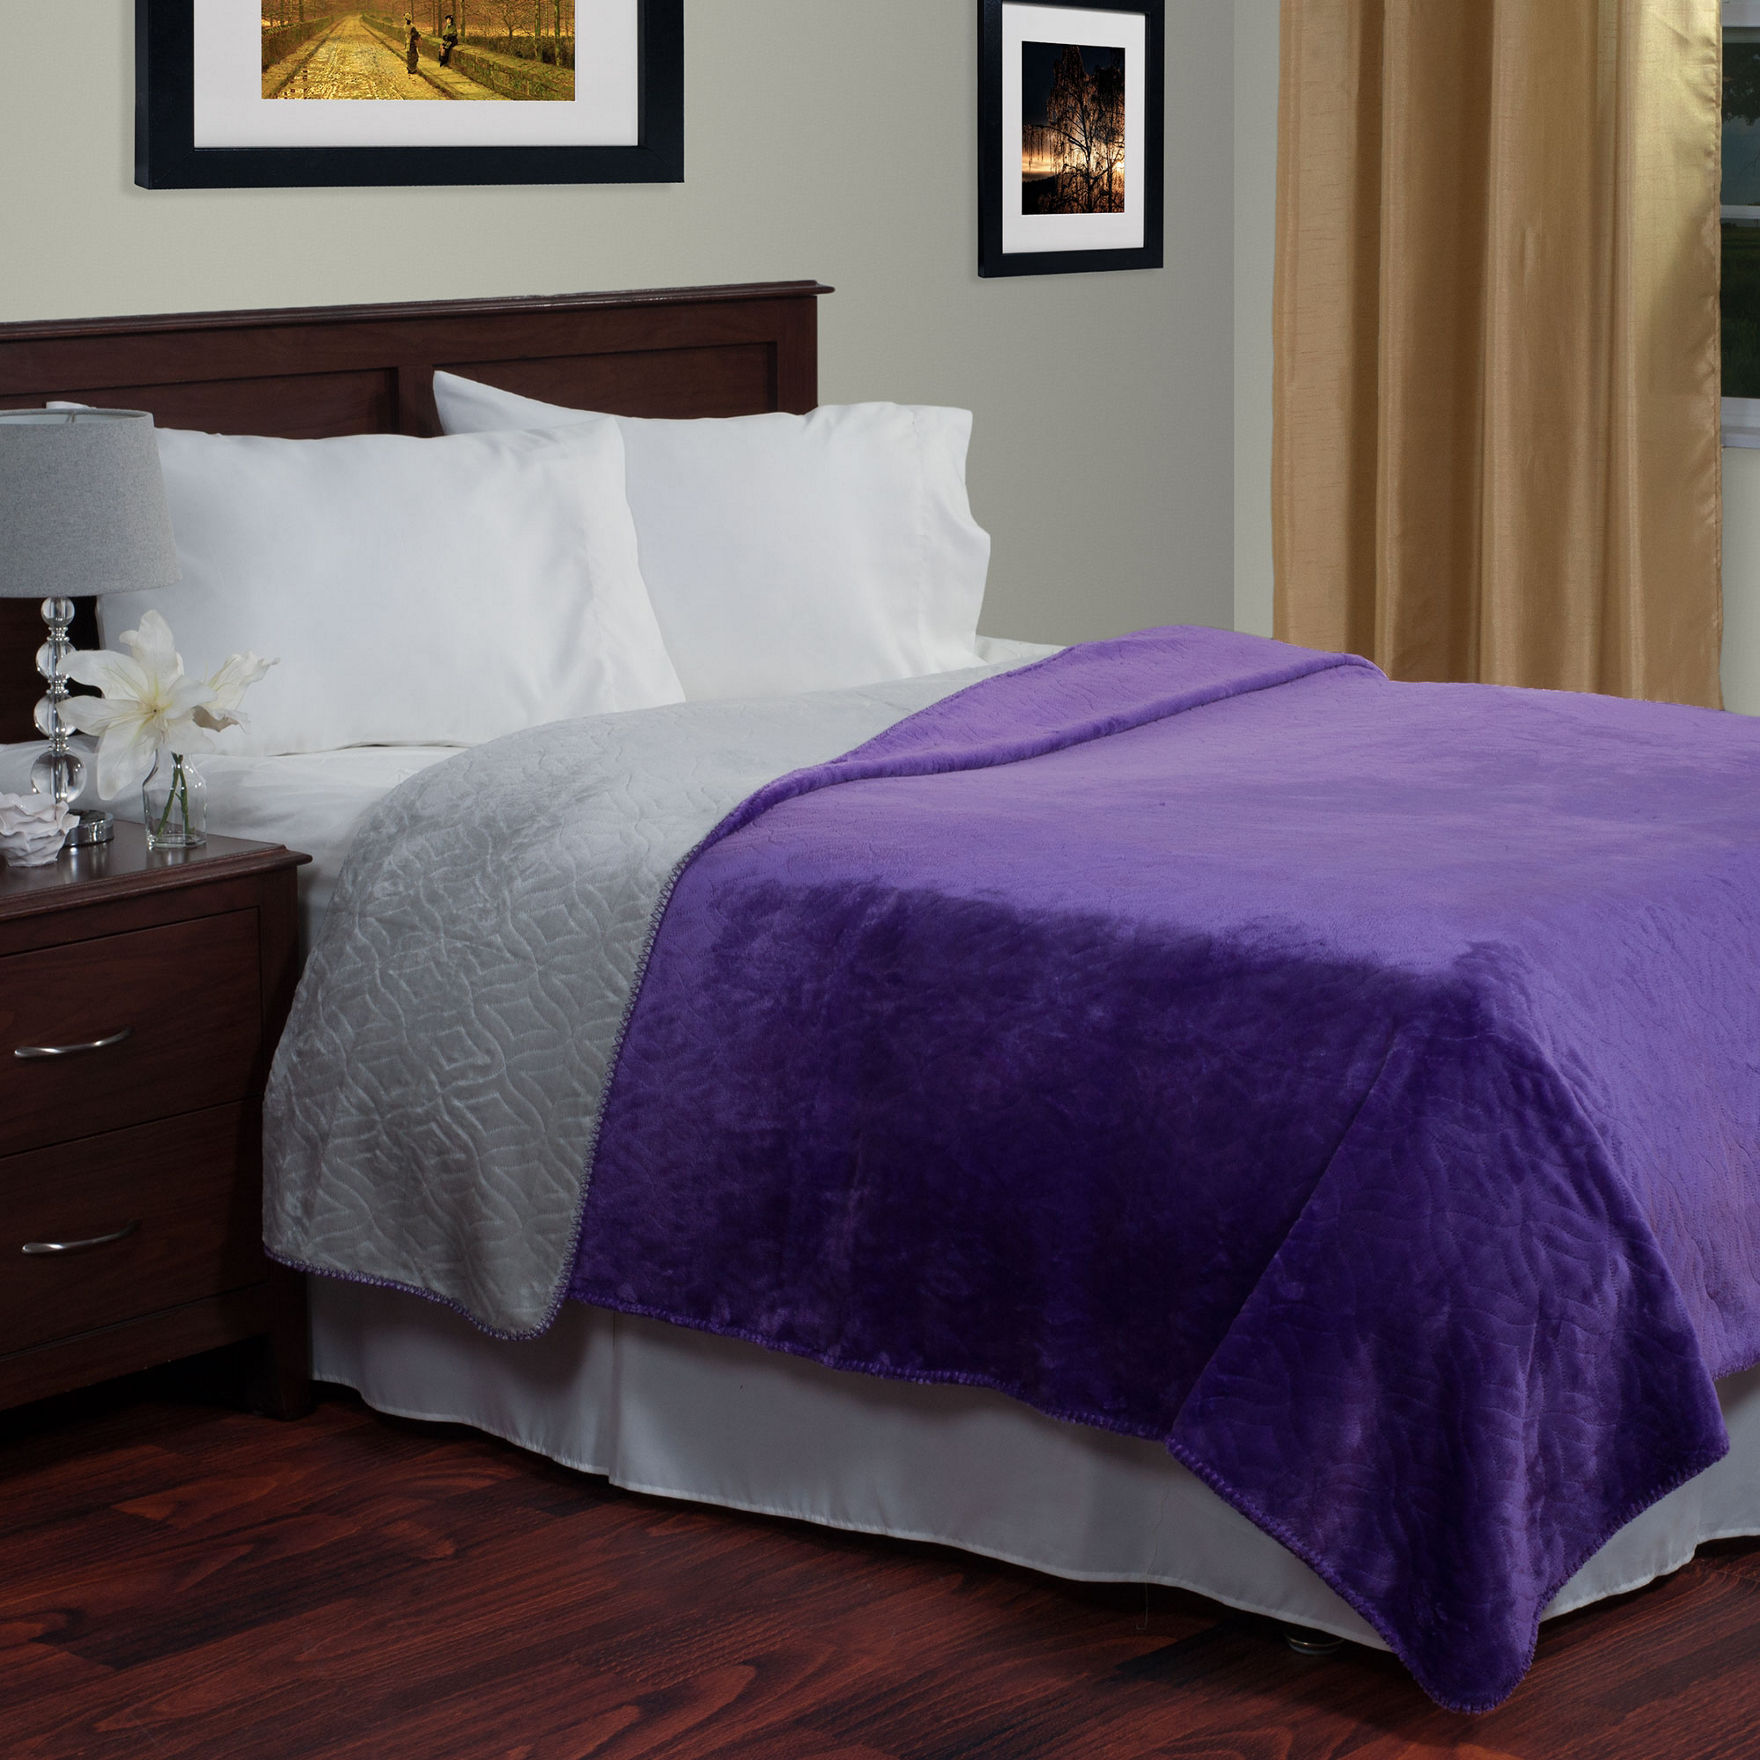 Lavish Home Purple / Grey Blankets & Throws